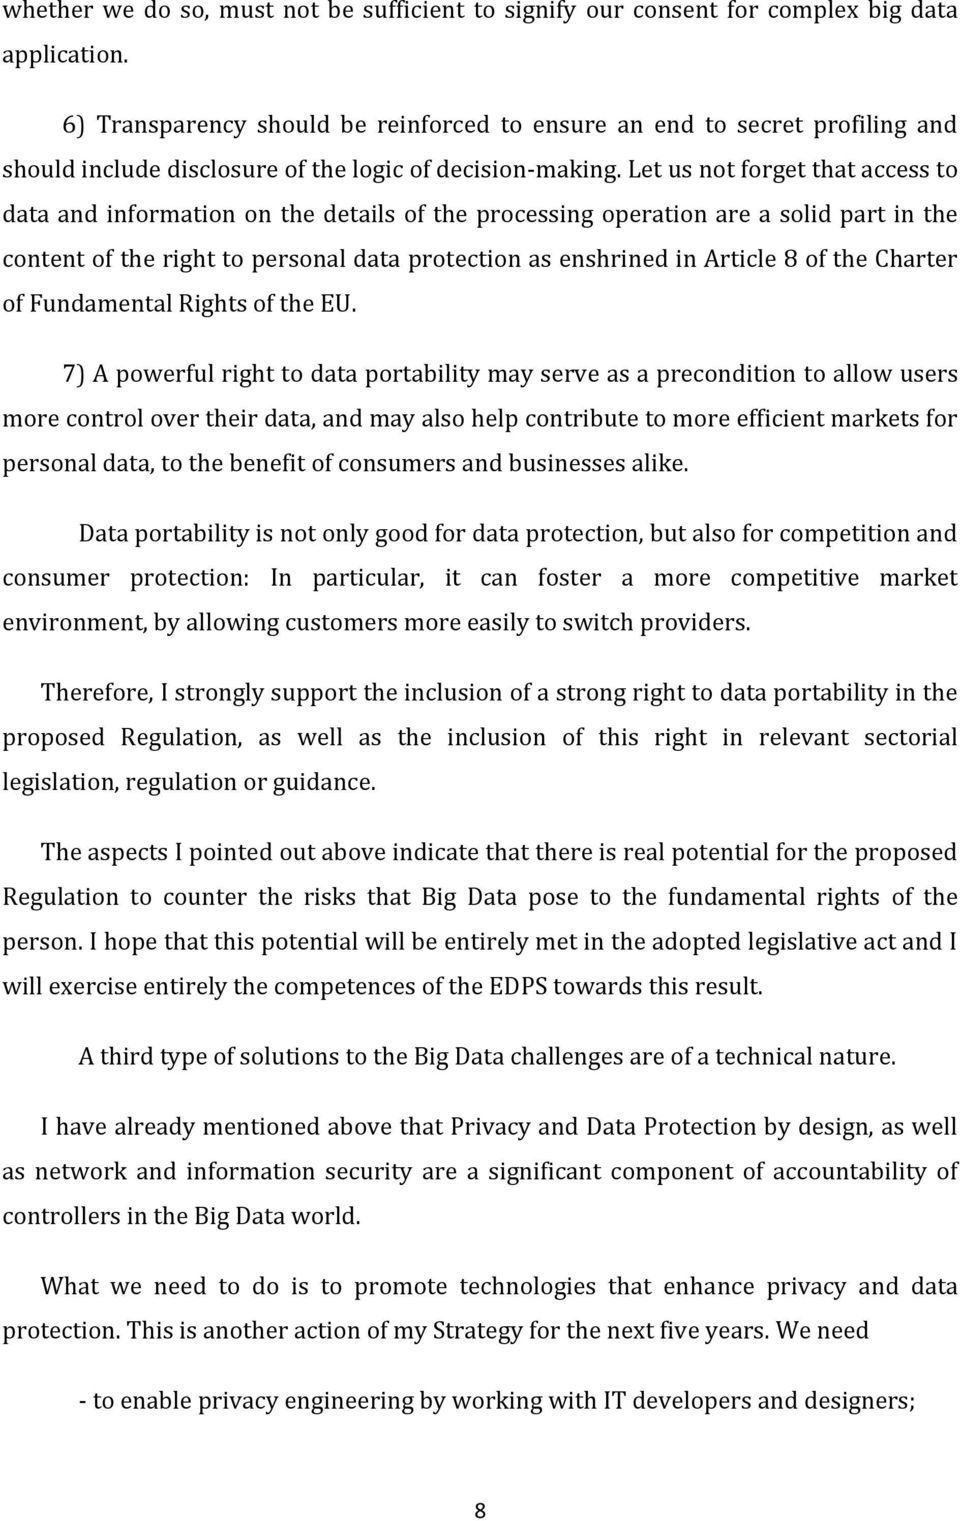 Let us not forget that access to data and information on the details of the processing operation are a solid part in the content of the right to personal data protection as enshrined in Article 8 of